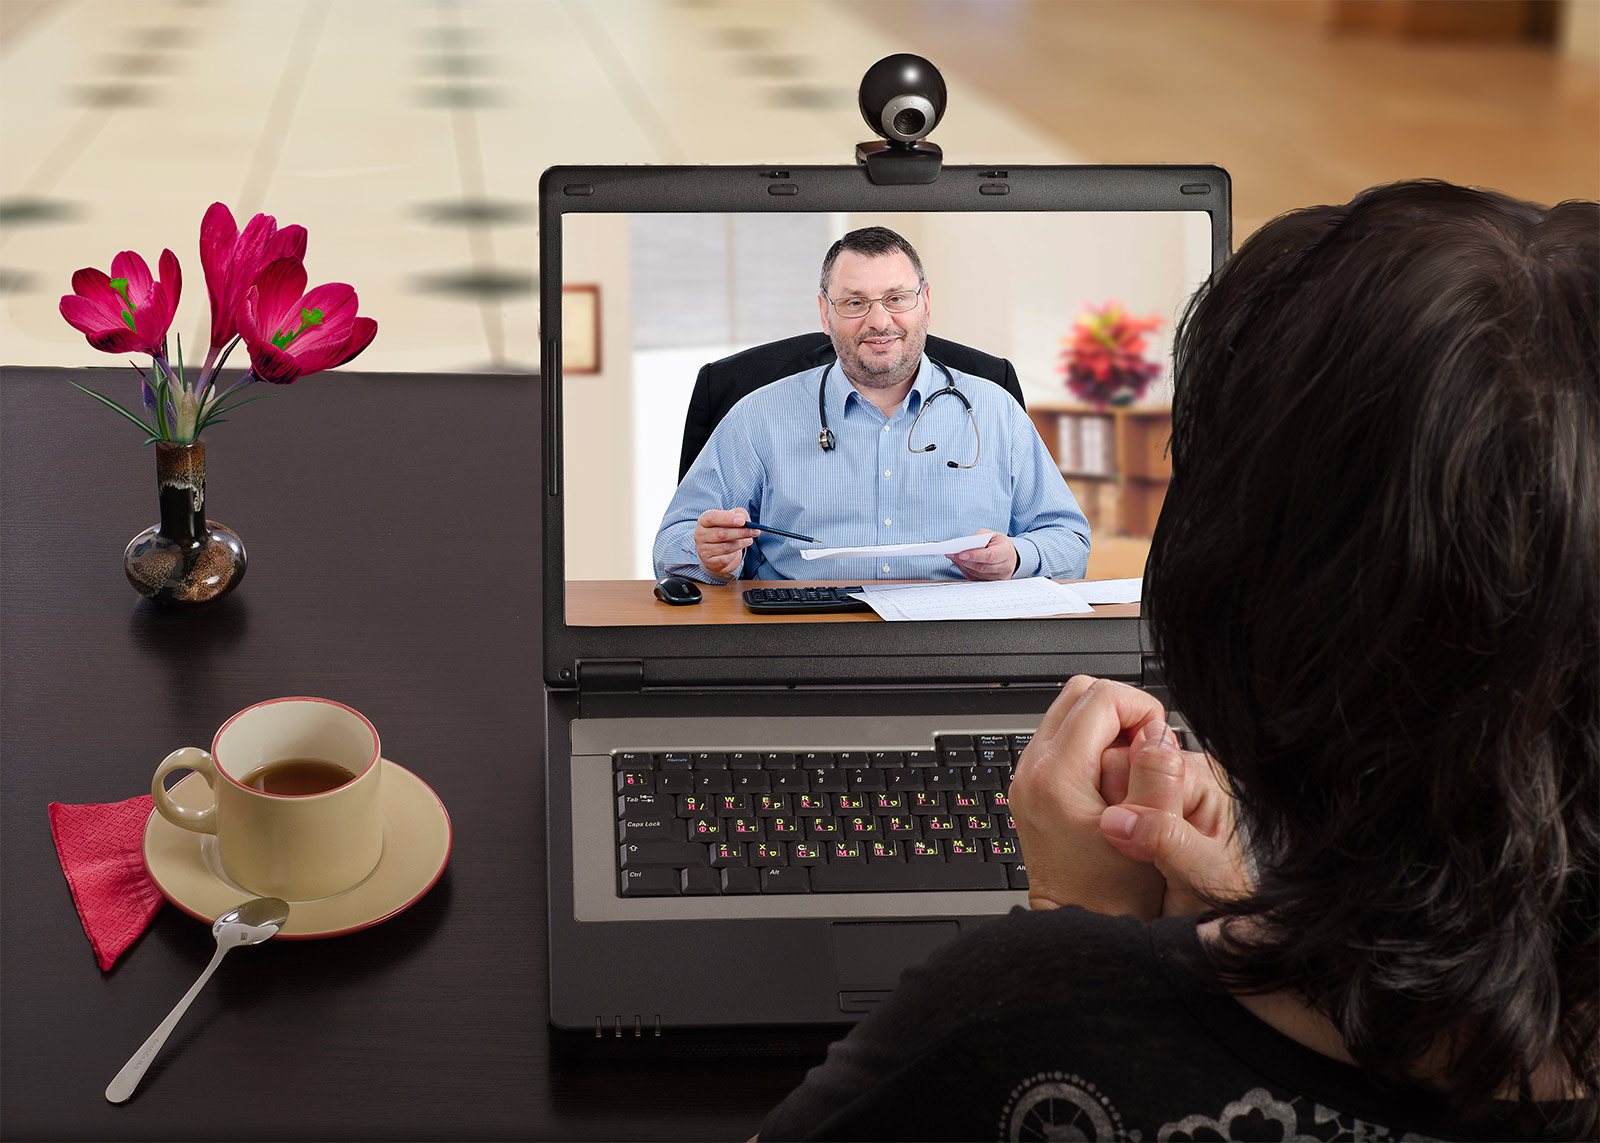 Patient Consulting Telehealth Doctor